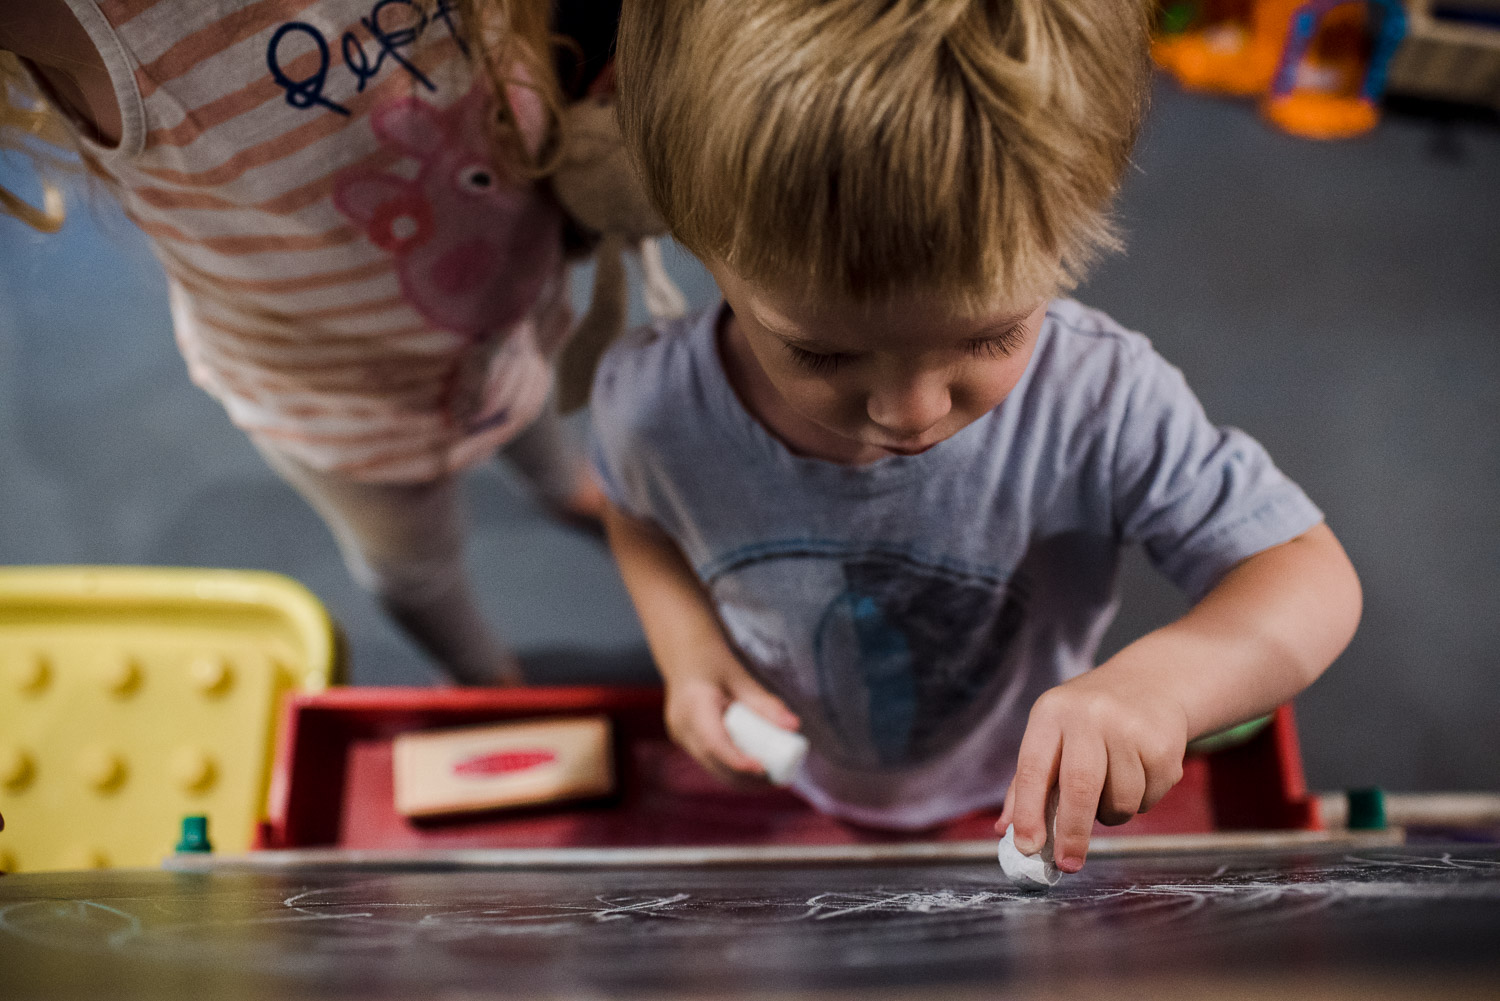 Francesca Russell Photography | Long Island Family Documentary Photography | Drawing on the chalkboard